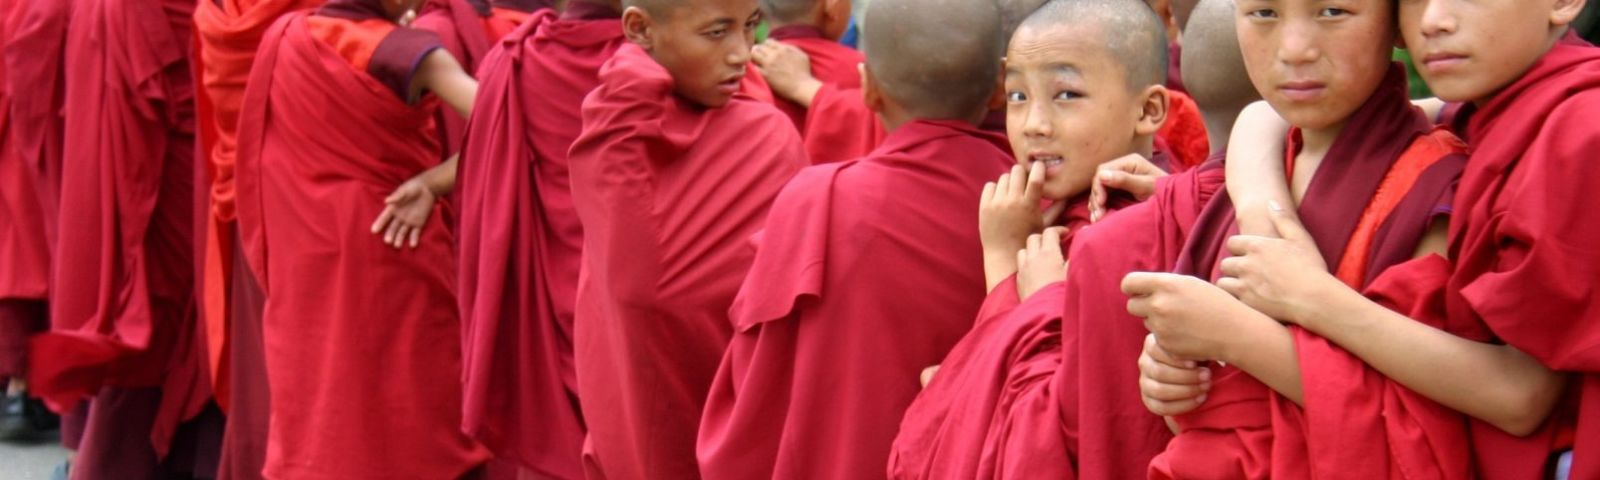 Bhutan For Beginners - 8 Top Things To See